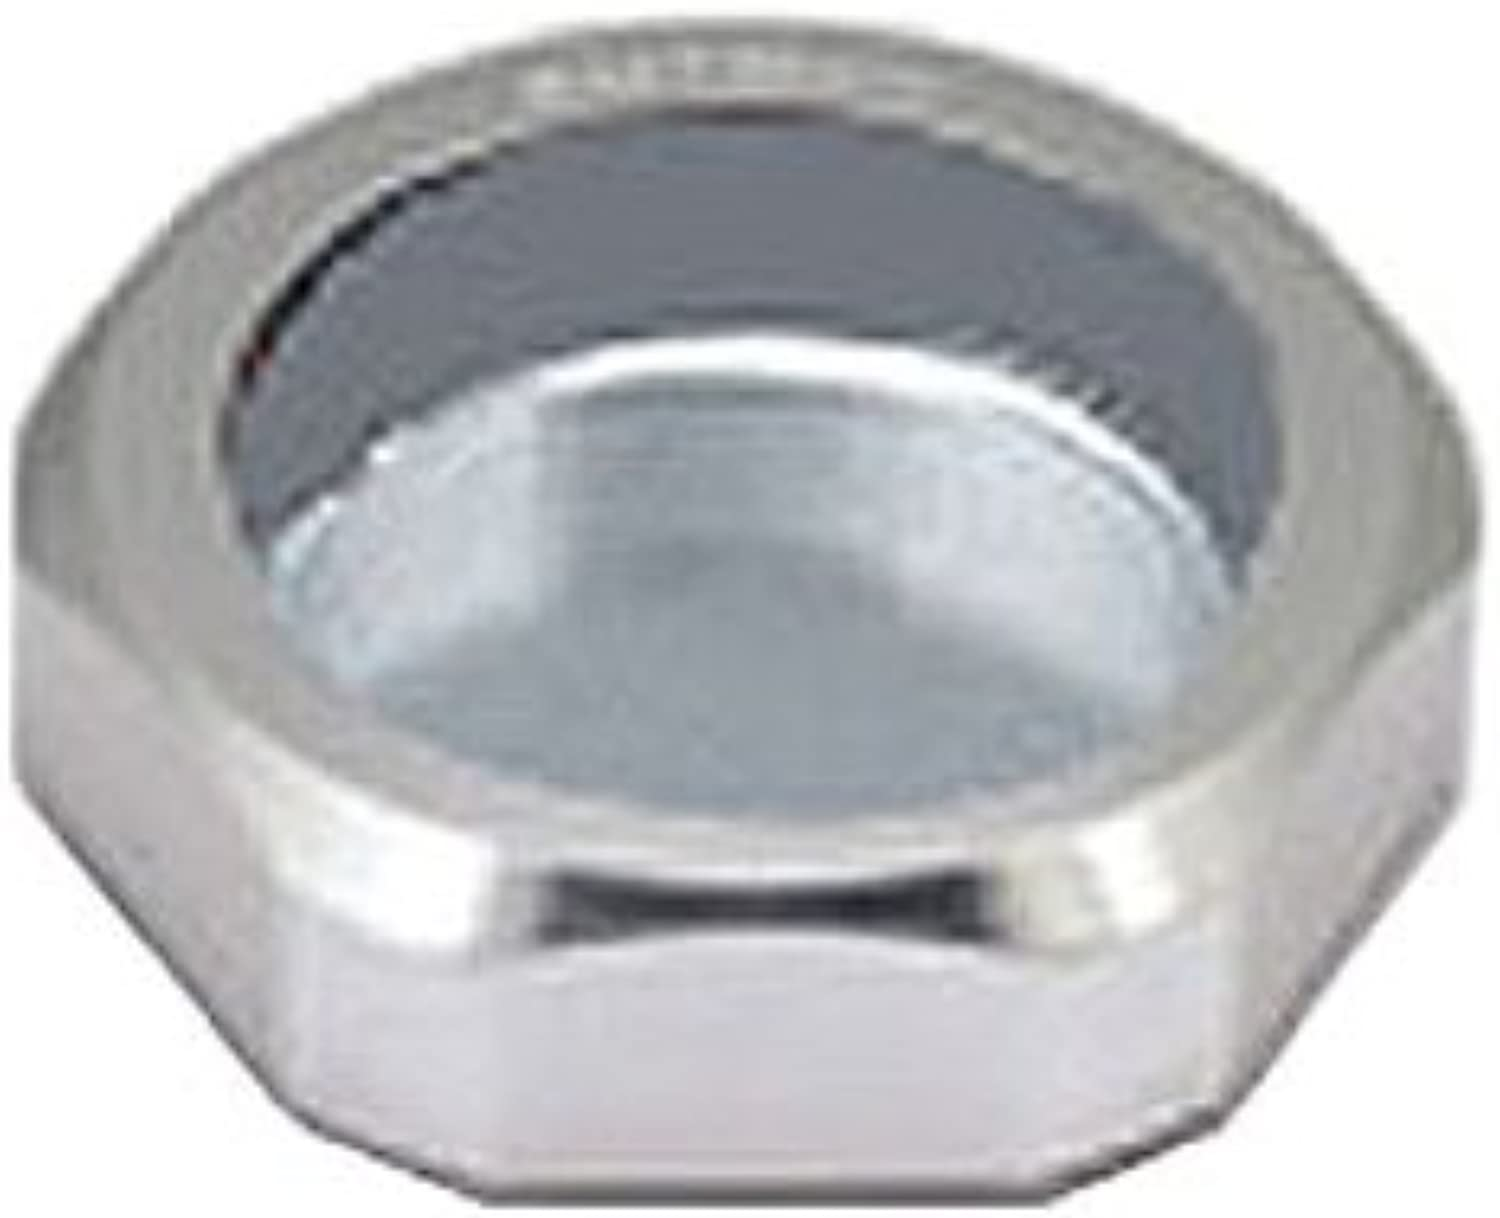 AUTOartDESIGN aluminum nut container (japan import)